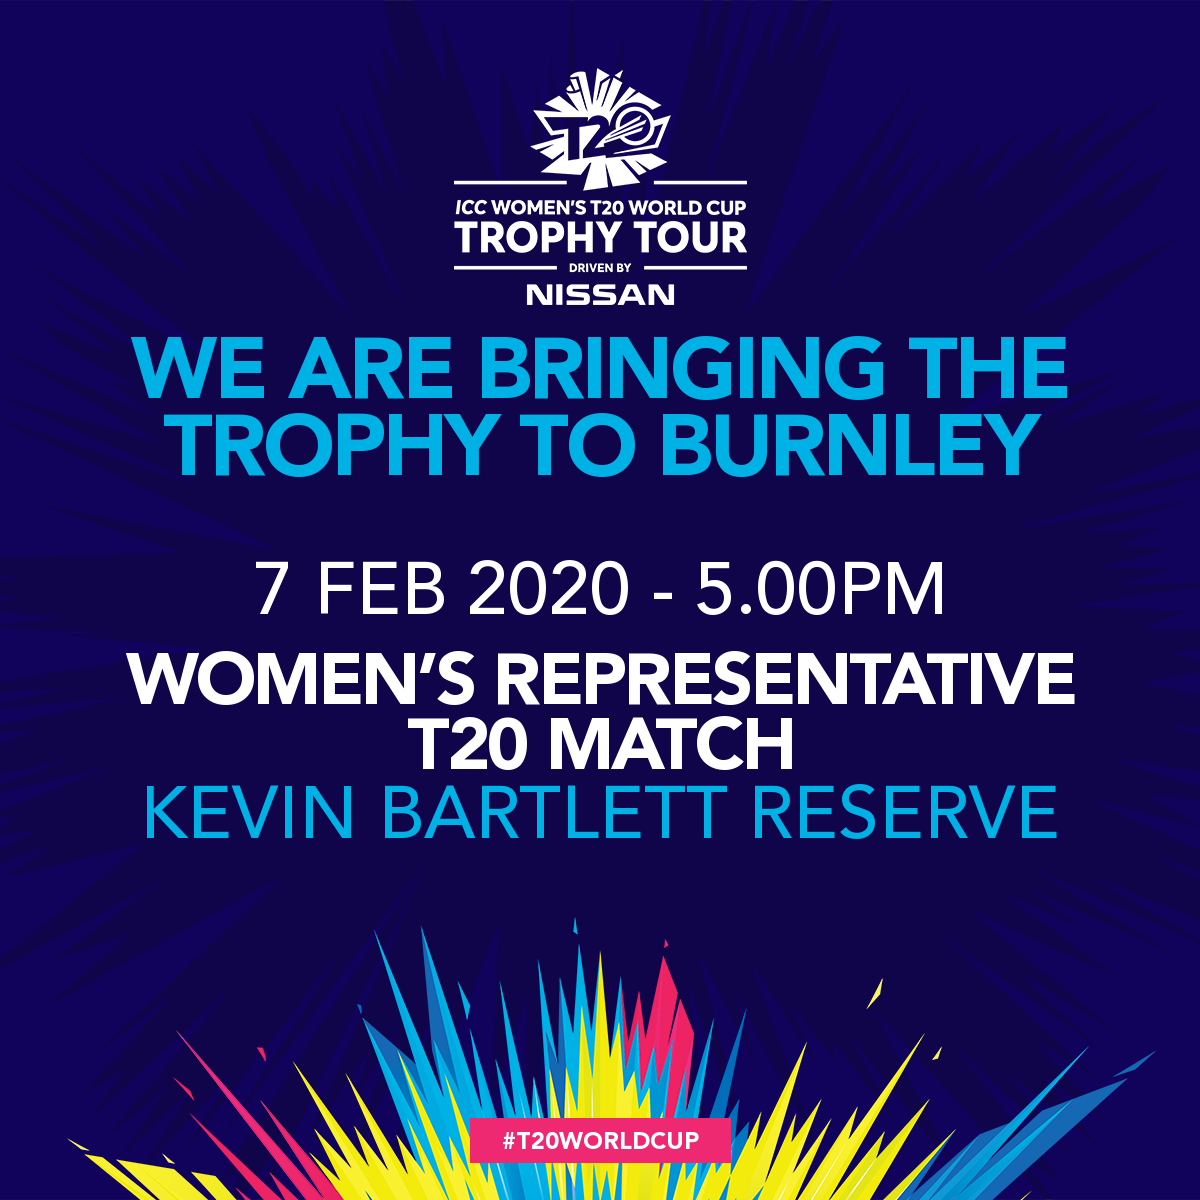 T20 World Cup trophy visit to Rep Match